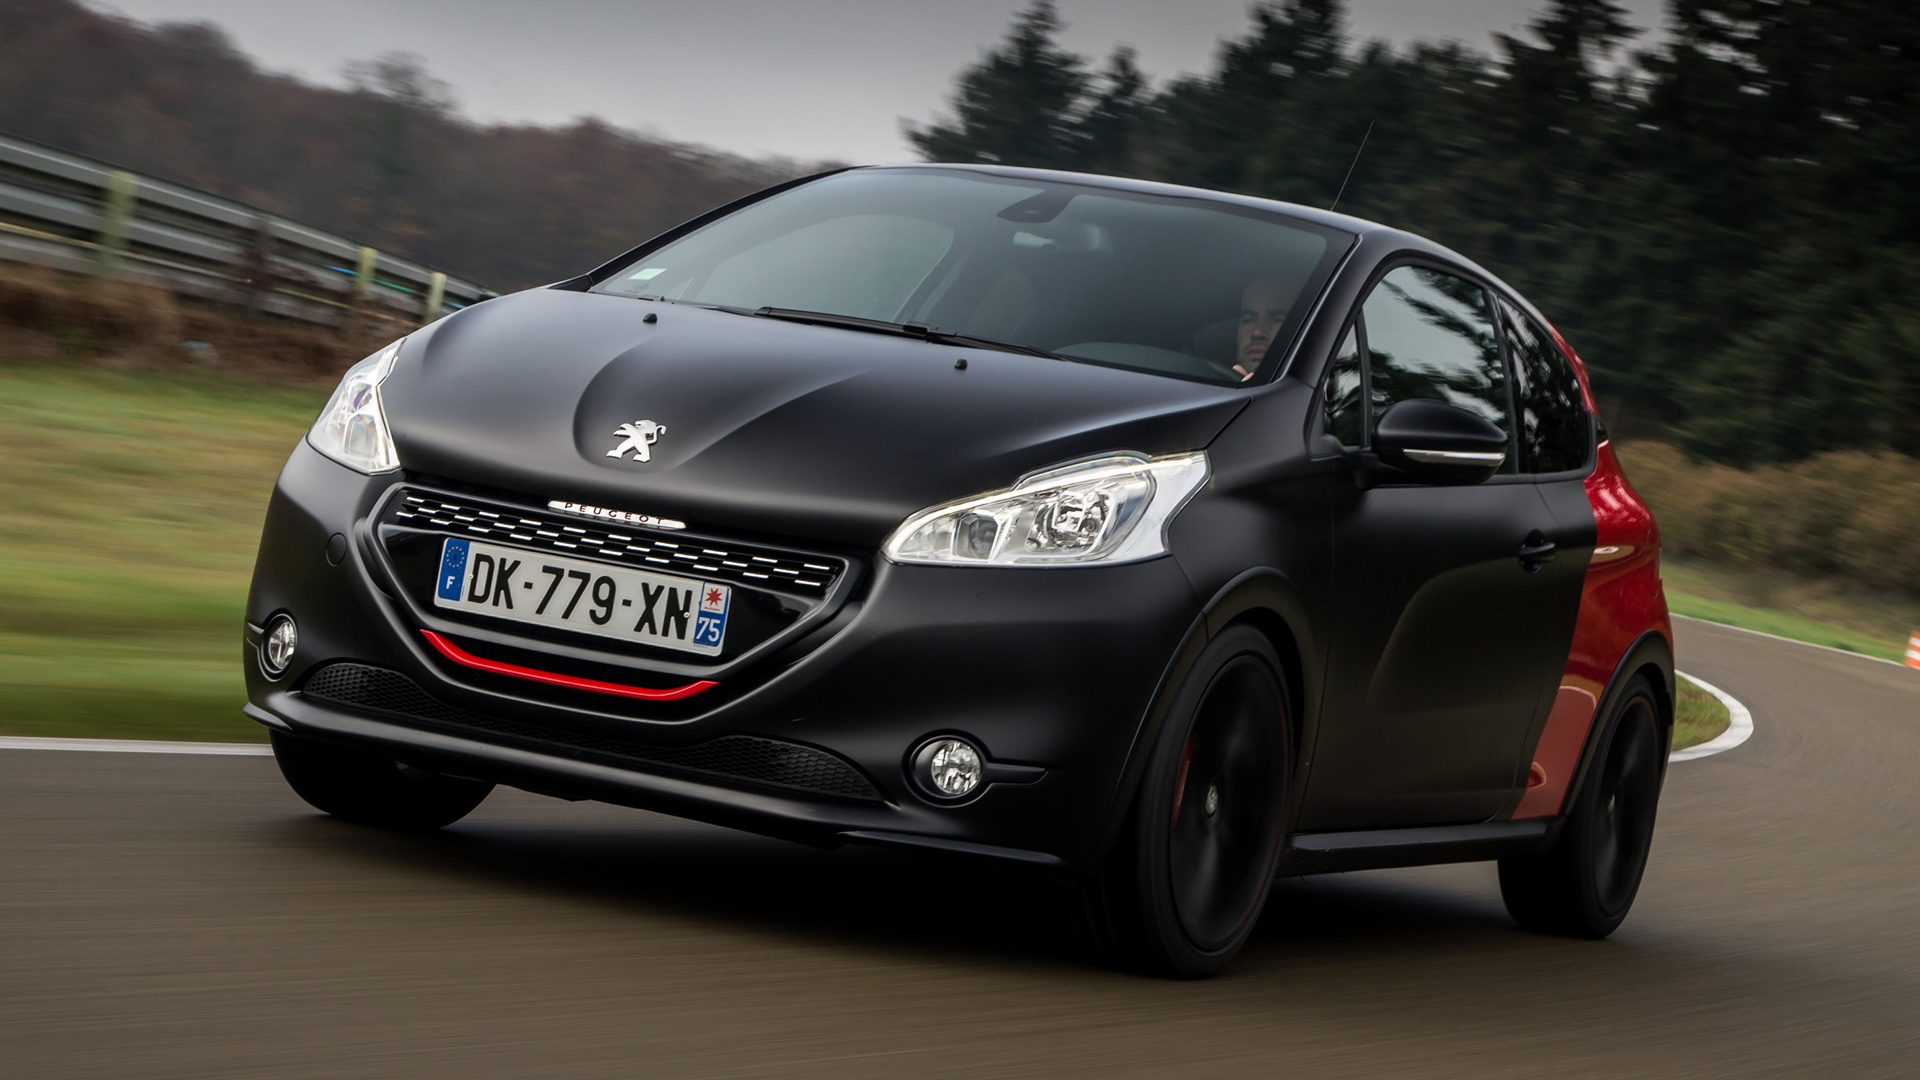 peugeot 208 gti 30th anniversary 2014 wallpapers and hd images car pixel. Black Bedroom Furniture Sets. Home Design Ideas